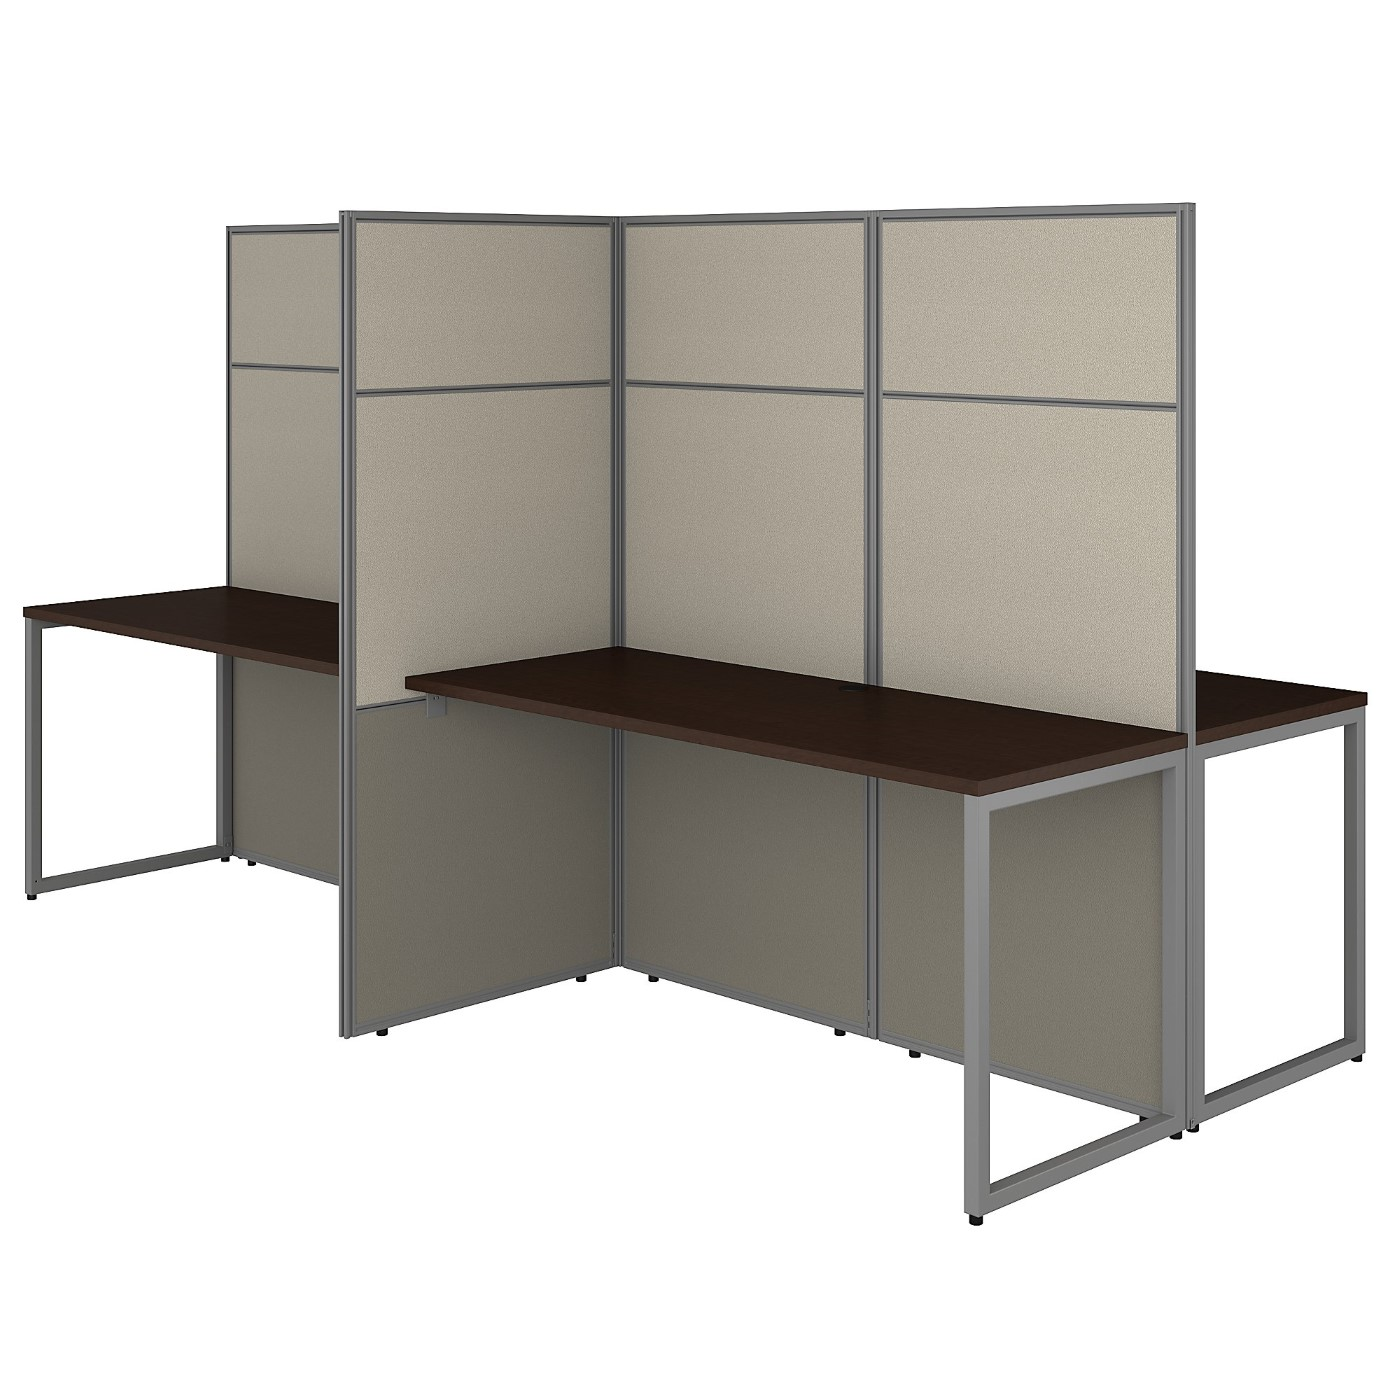 <font color=#c60><b>BUSH BUSINESS FURNITURE EASY OFFICE 60W 4 PERSON CUBICLE DESK WORKSTATION WITH 66H PANELS. FREE SHIPPING 30H x 72L x 72W</font></b>